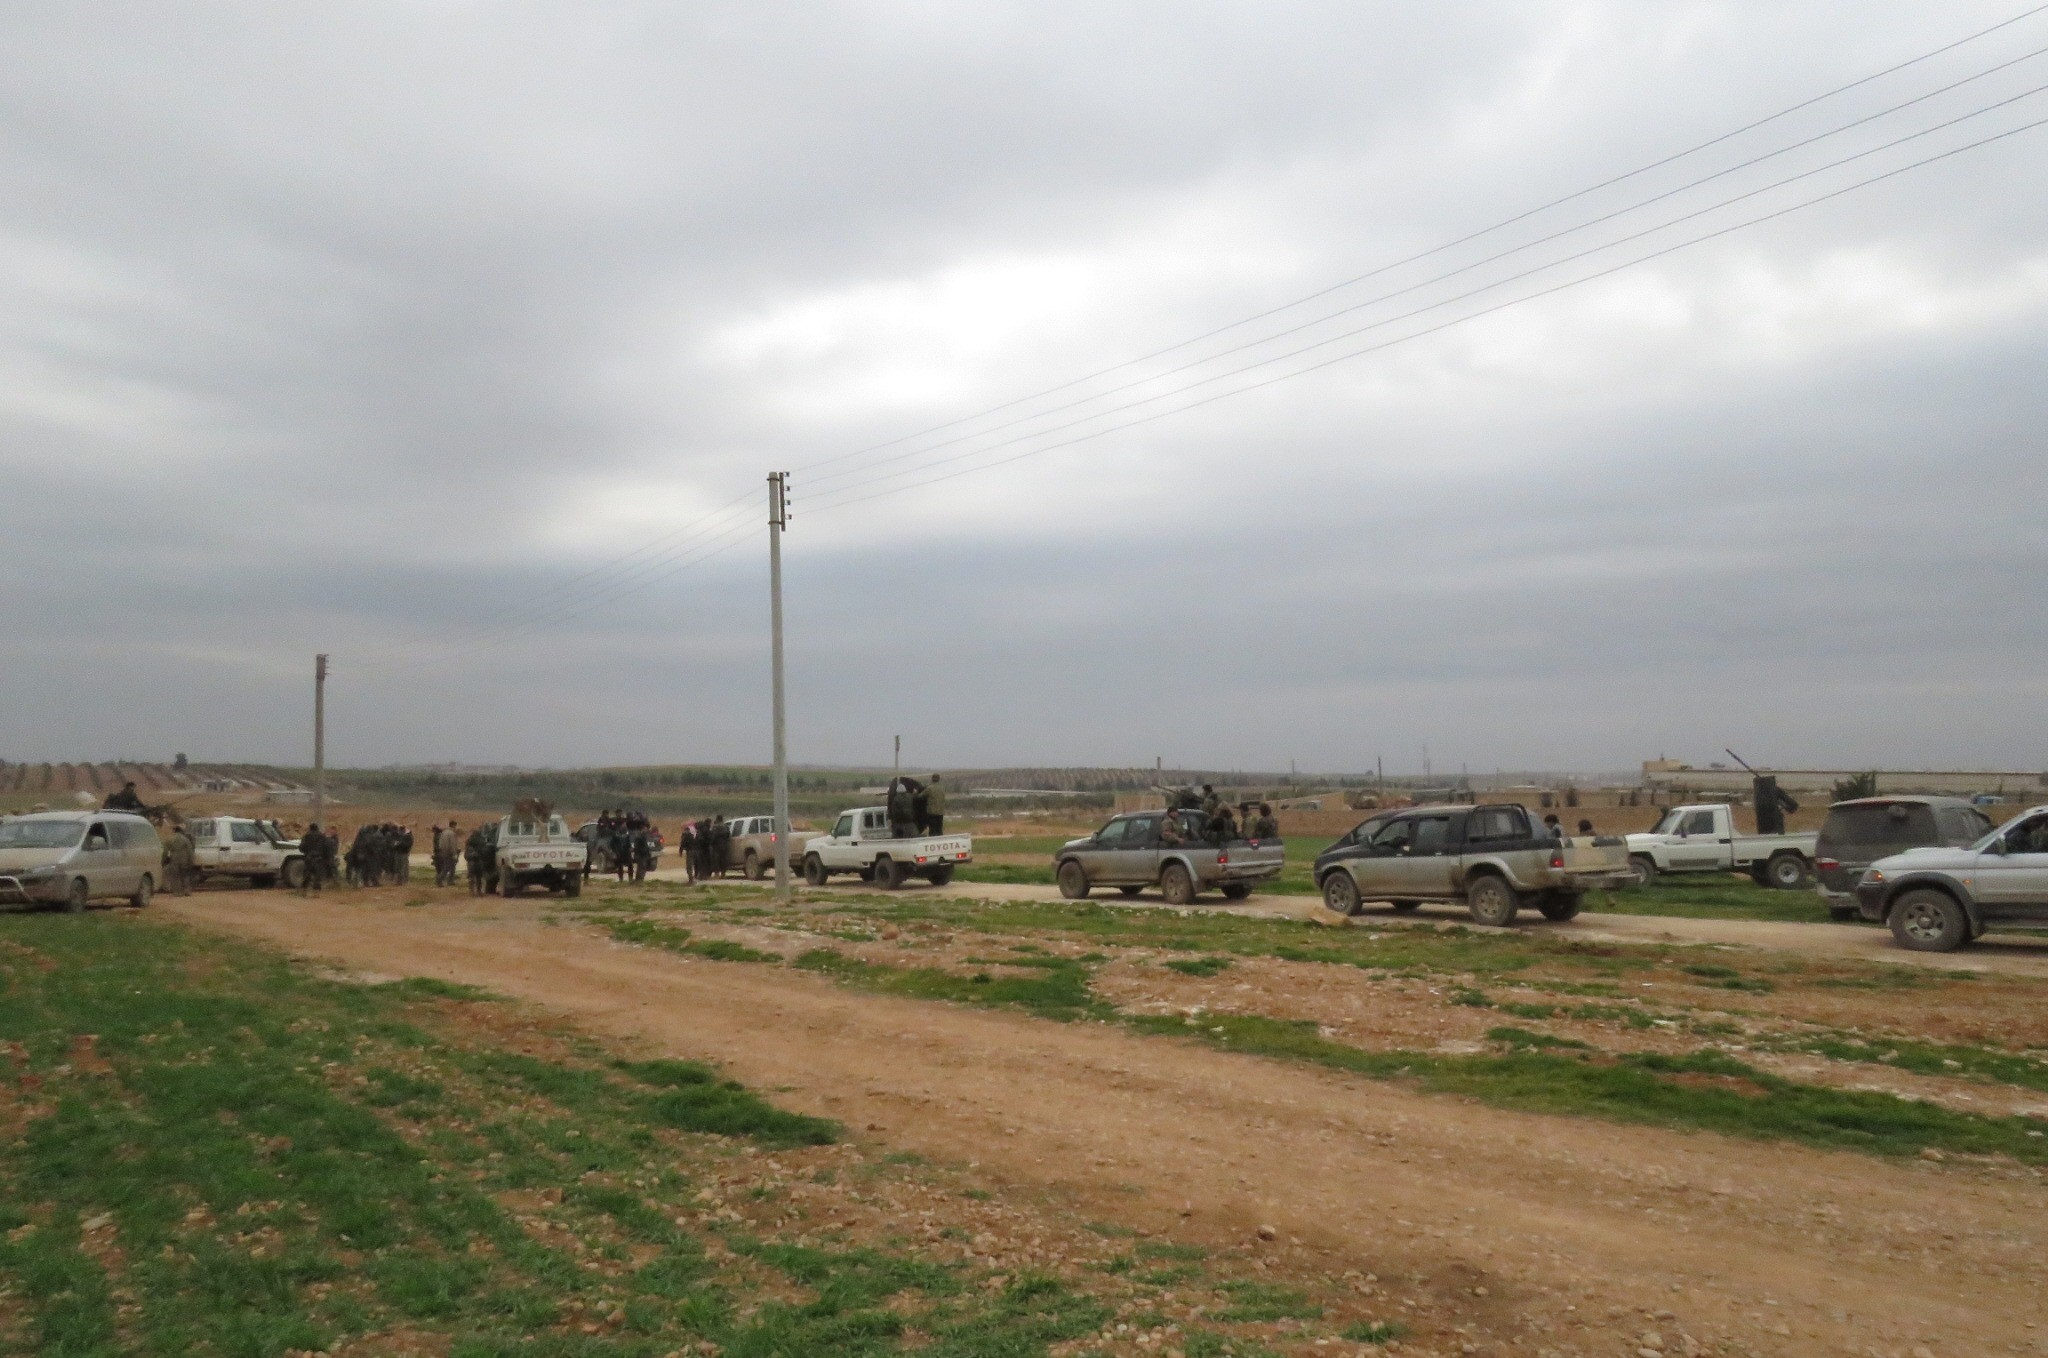 Armed vehicles of Free Syrian Army (FSA) forces, which have been carrying out Operation Euphrates Shield backed by the Turkish military against Daesh terrorists in Syrian towns since Aug. 24, 2016, standing in a western village of al-Bab, Feb. 12.